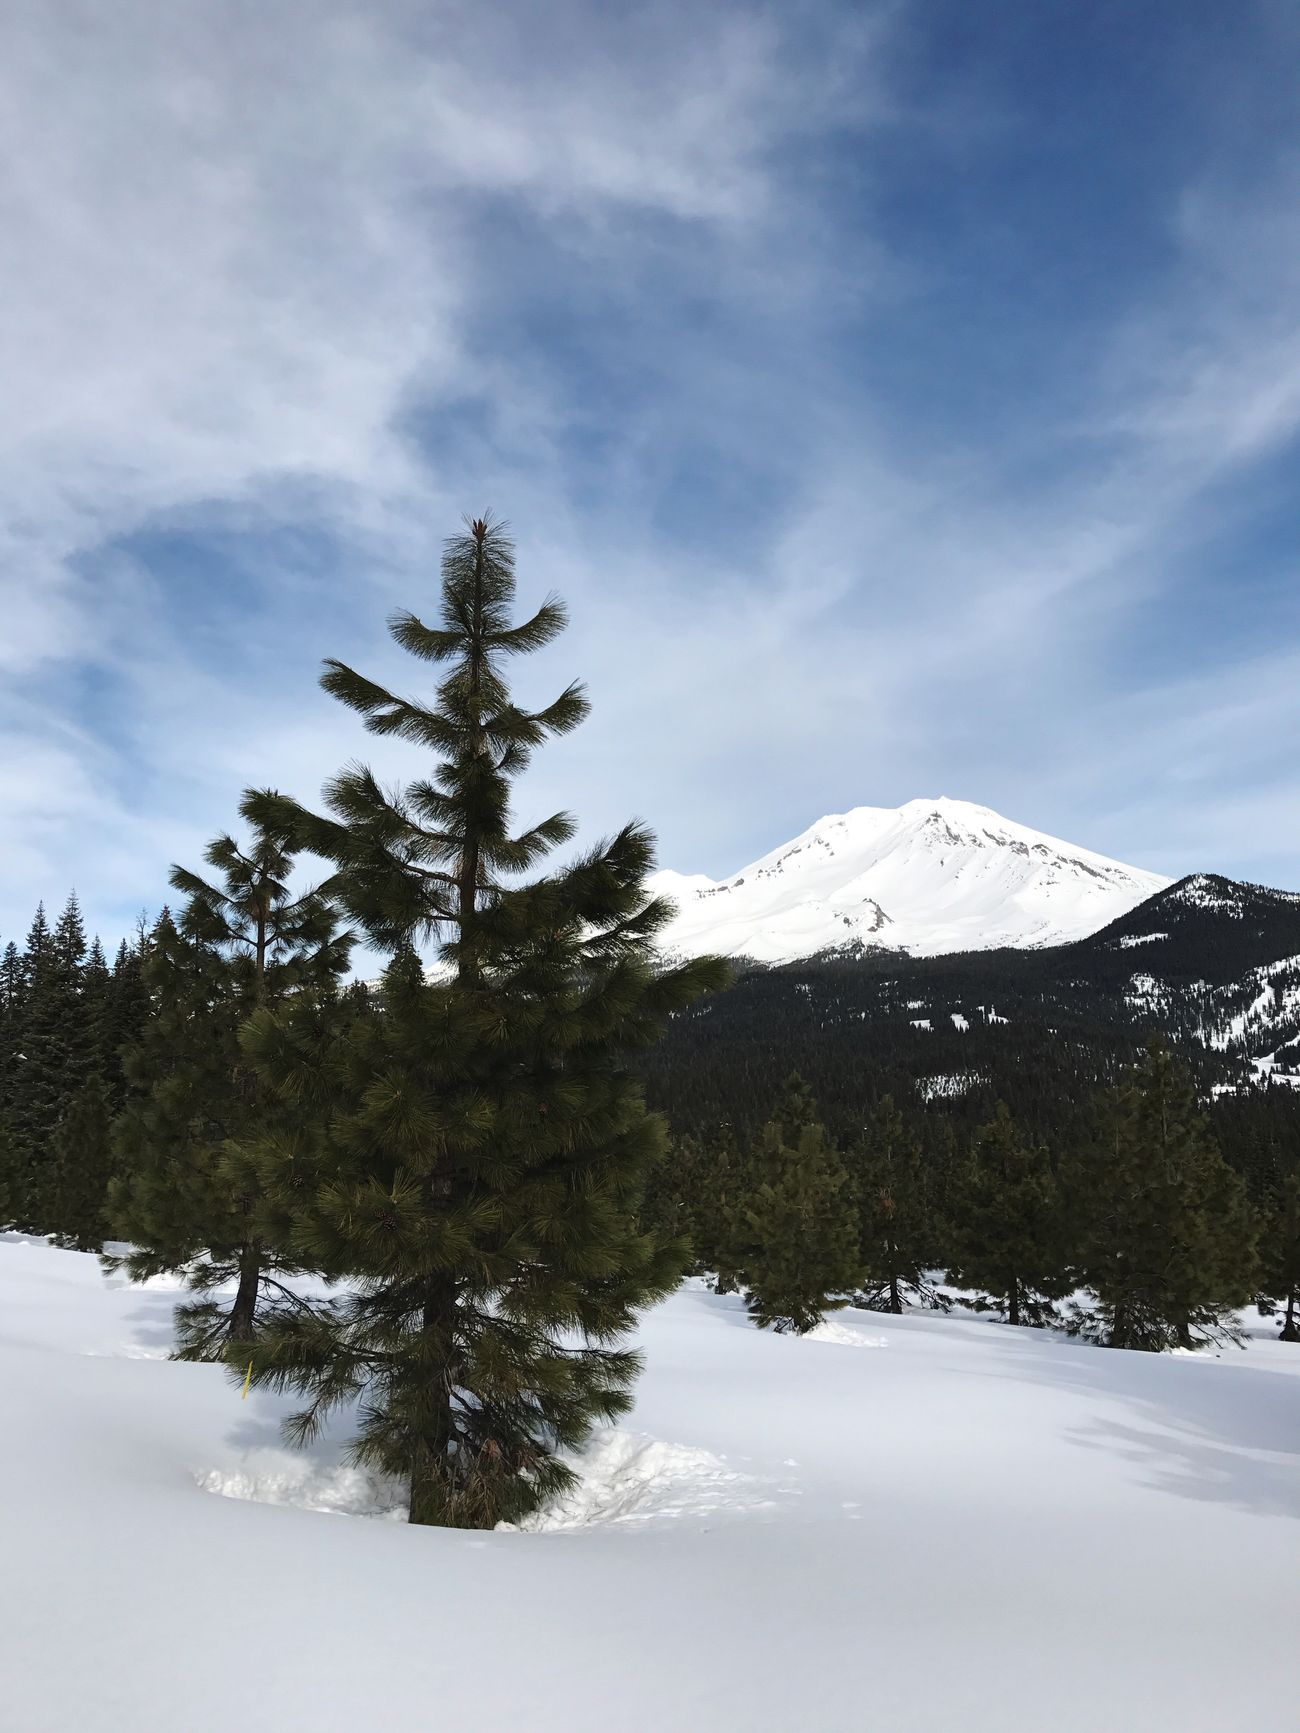 Snow Winter Mountain Nature Cold Temperature Beauty In Nature Sky Tree Scenics Tranquility Weather Landscape Tranquil Scene Outdoors No People Mountain Range Day Coniferous Tree Mt. Shasta Siskiyou County Nordic Afternoon Light Get Outside